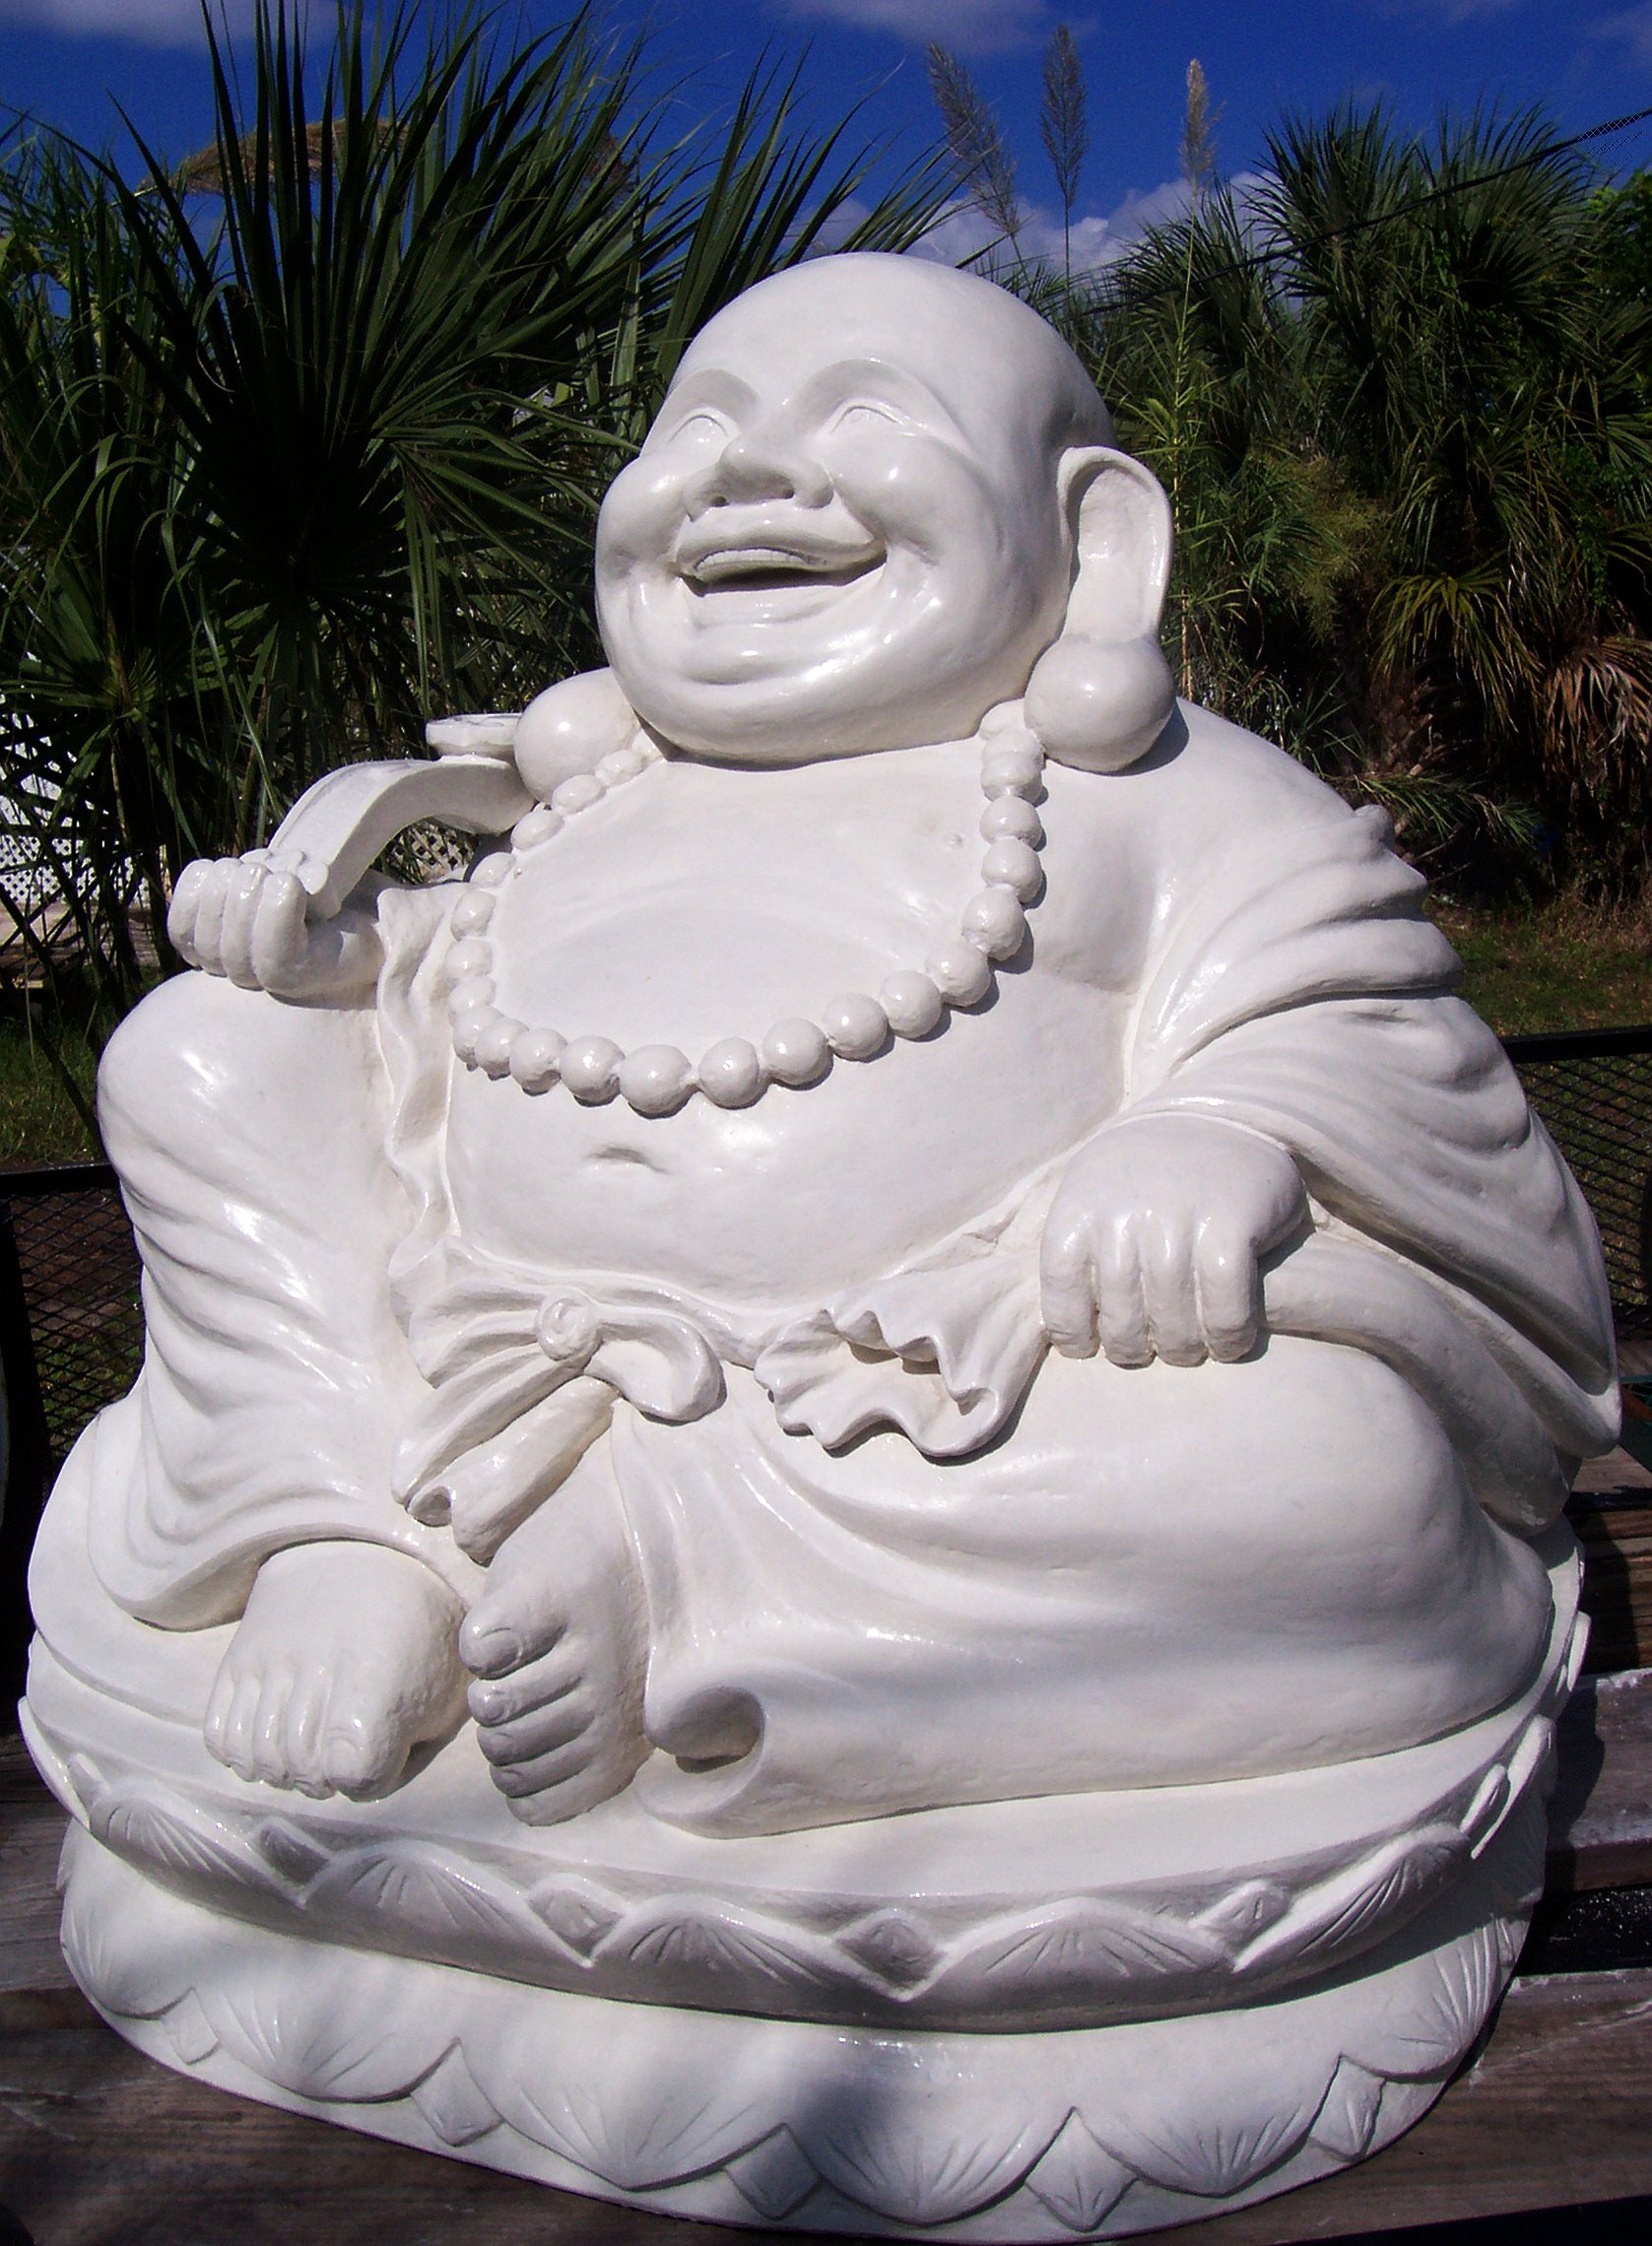 Happy buddha laughing on lotus flower for sale custom buddha art laughing buddha on lotus base with mantra beads and prayer faux white marble sculpture approx 37d x 44w x 49h inches indoor outdoor custom made statue izmirmasajfo